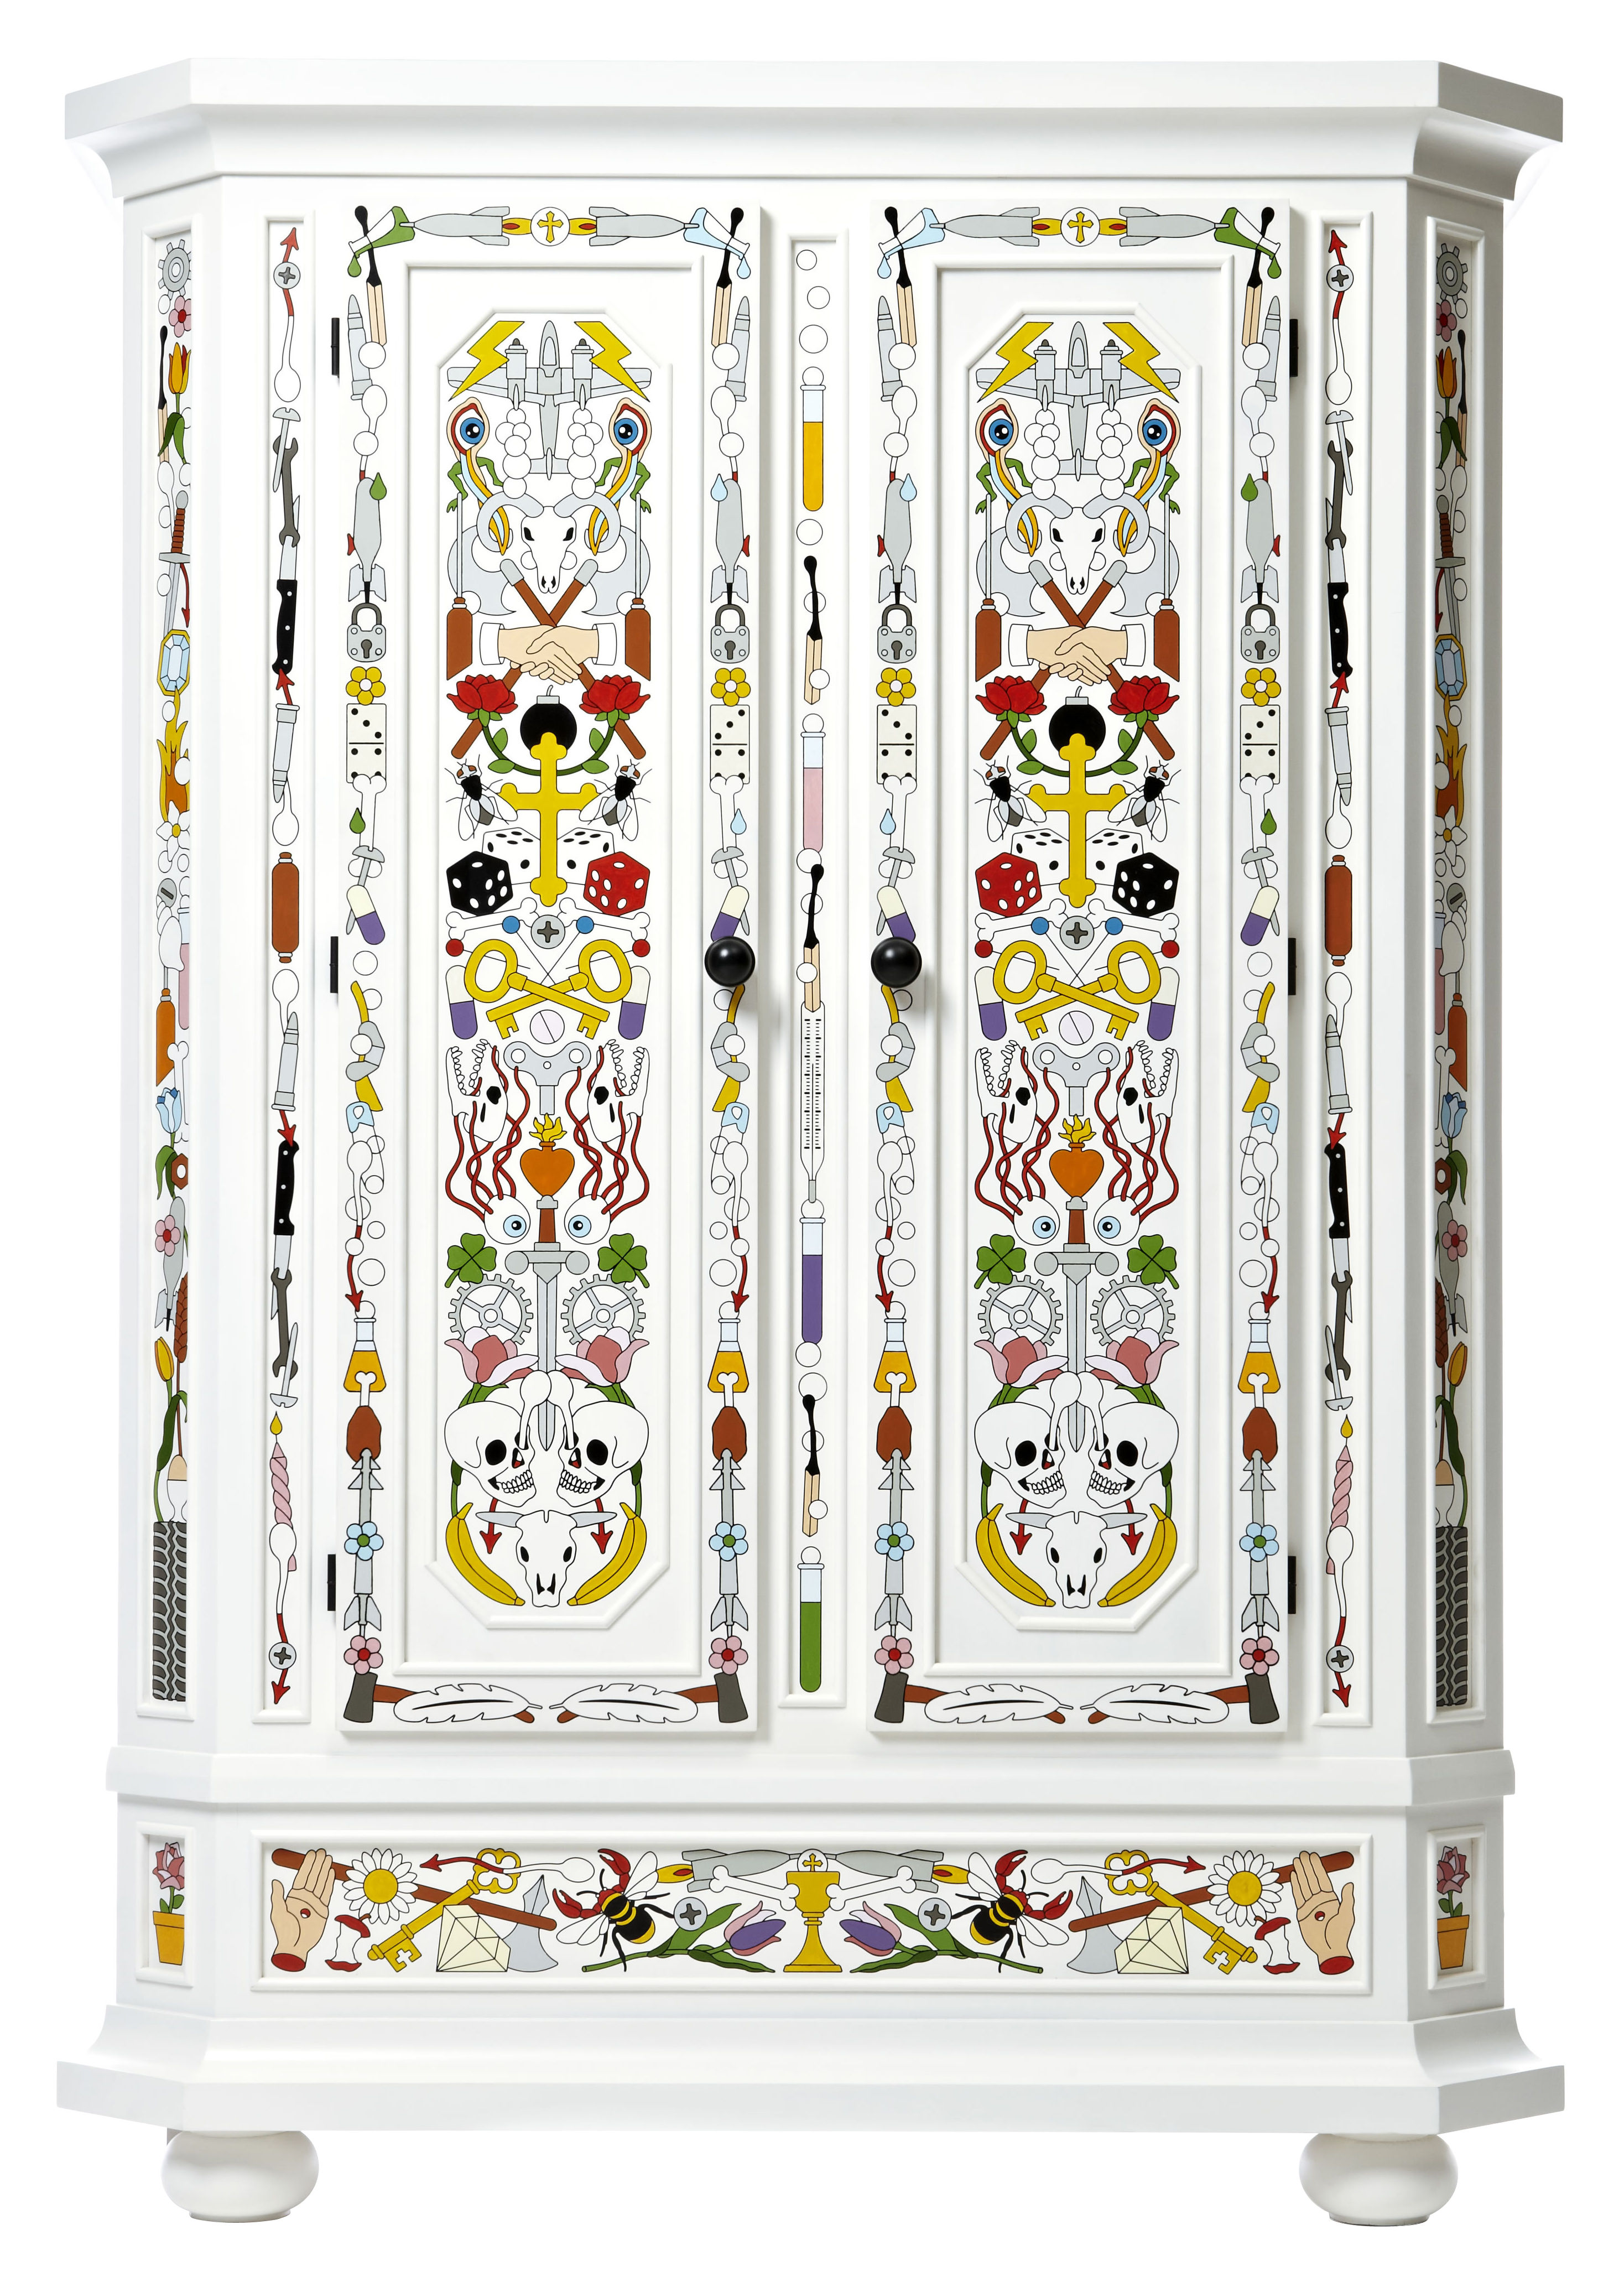 Furniture - Dressers & Storage Units - Altdeutsche Wardrobe - Hand decorated by Moooi - White / Multicolor - Solid pine